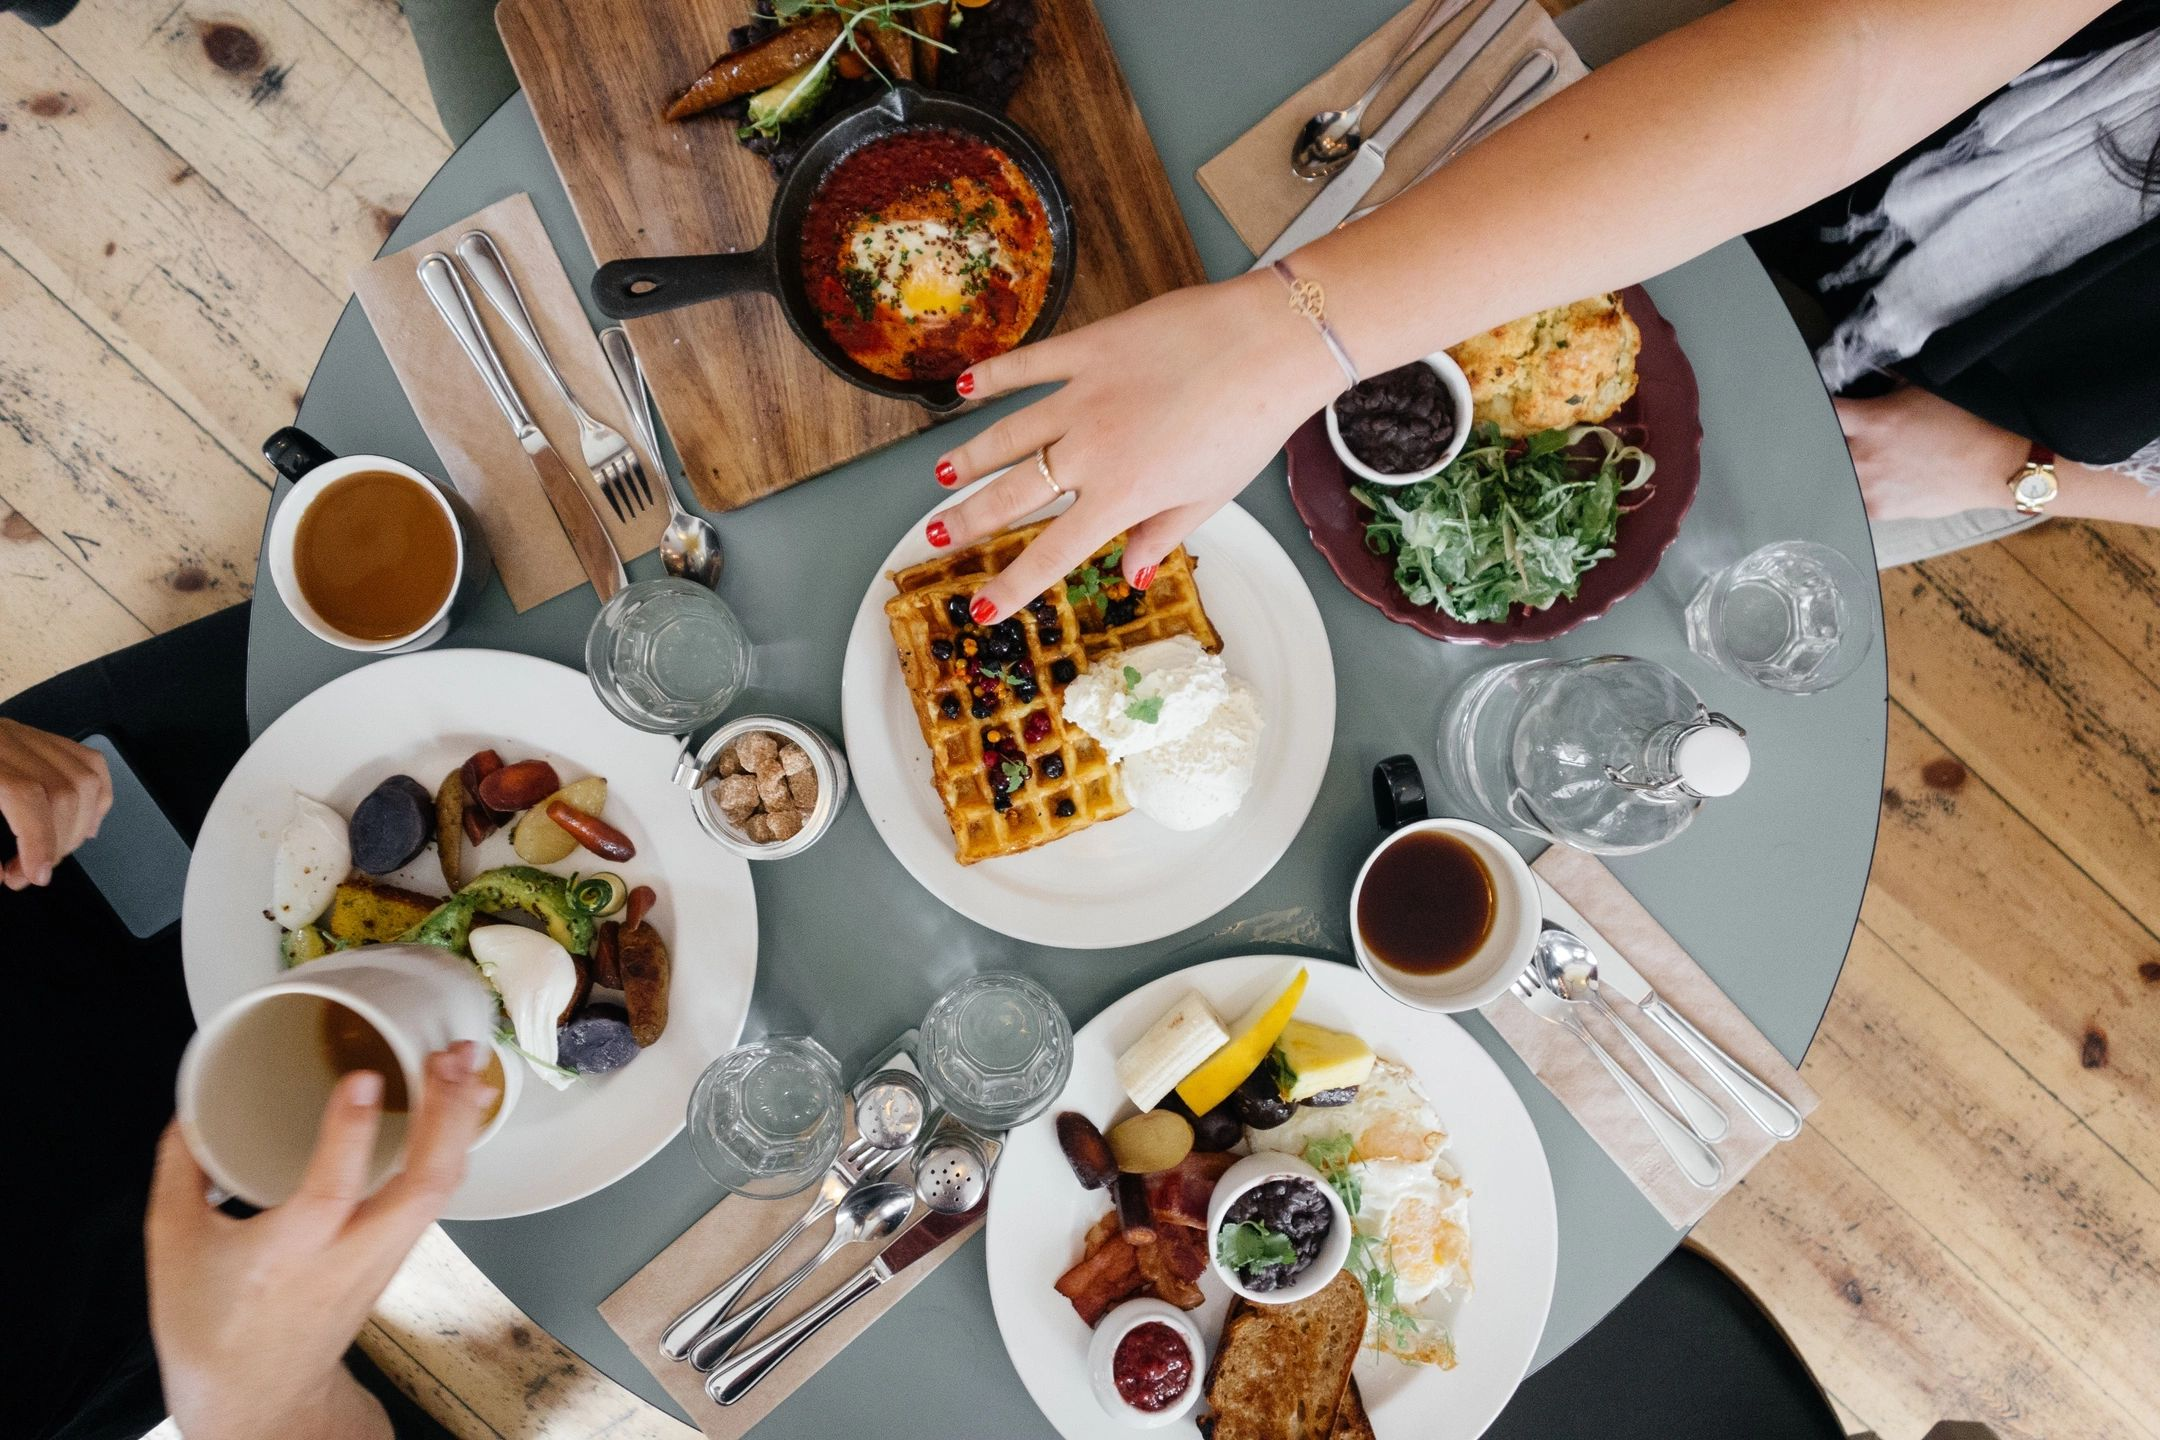 How to Overcome Weekend Overeating